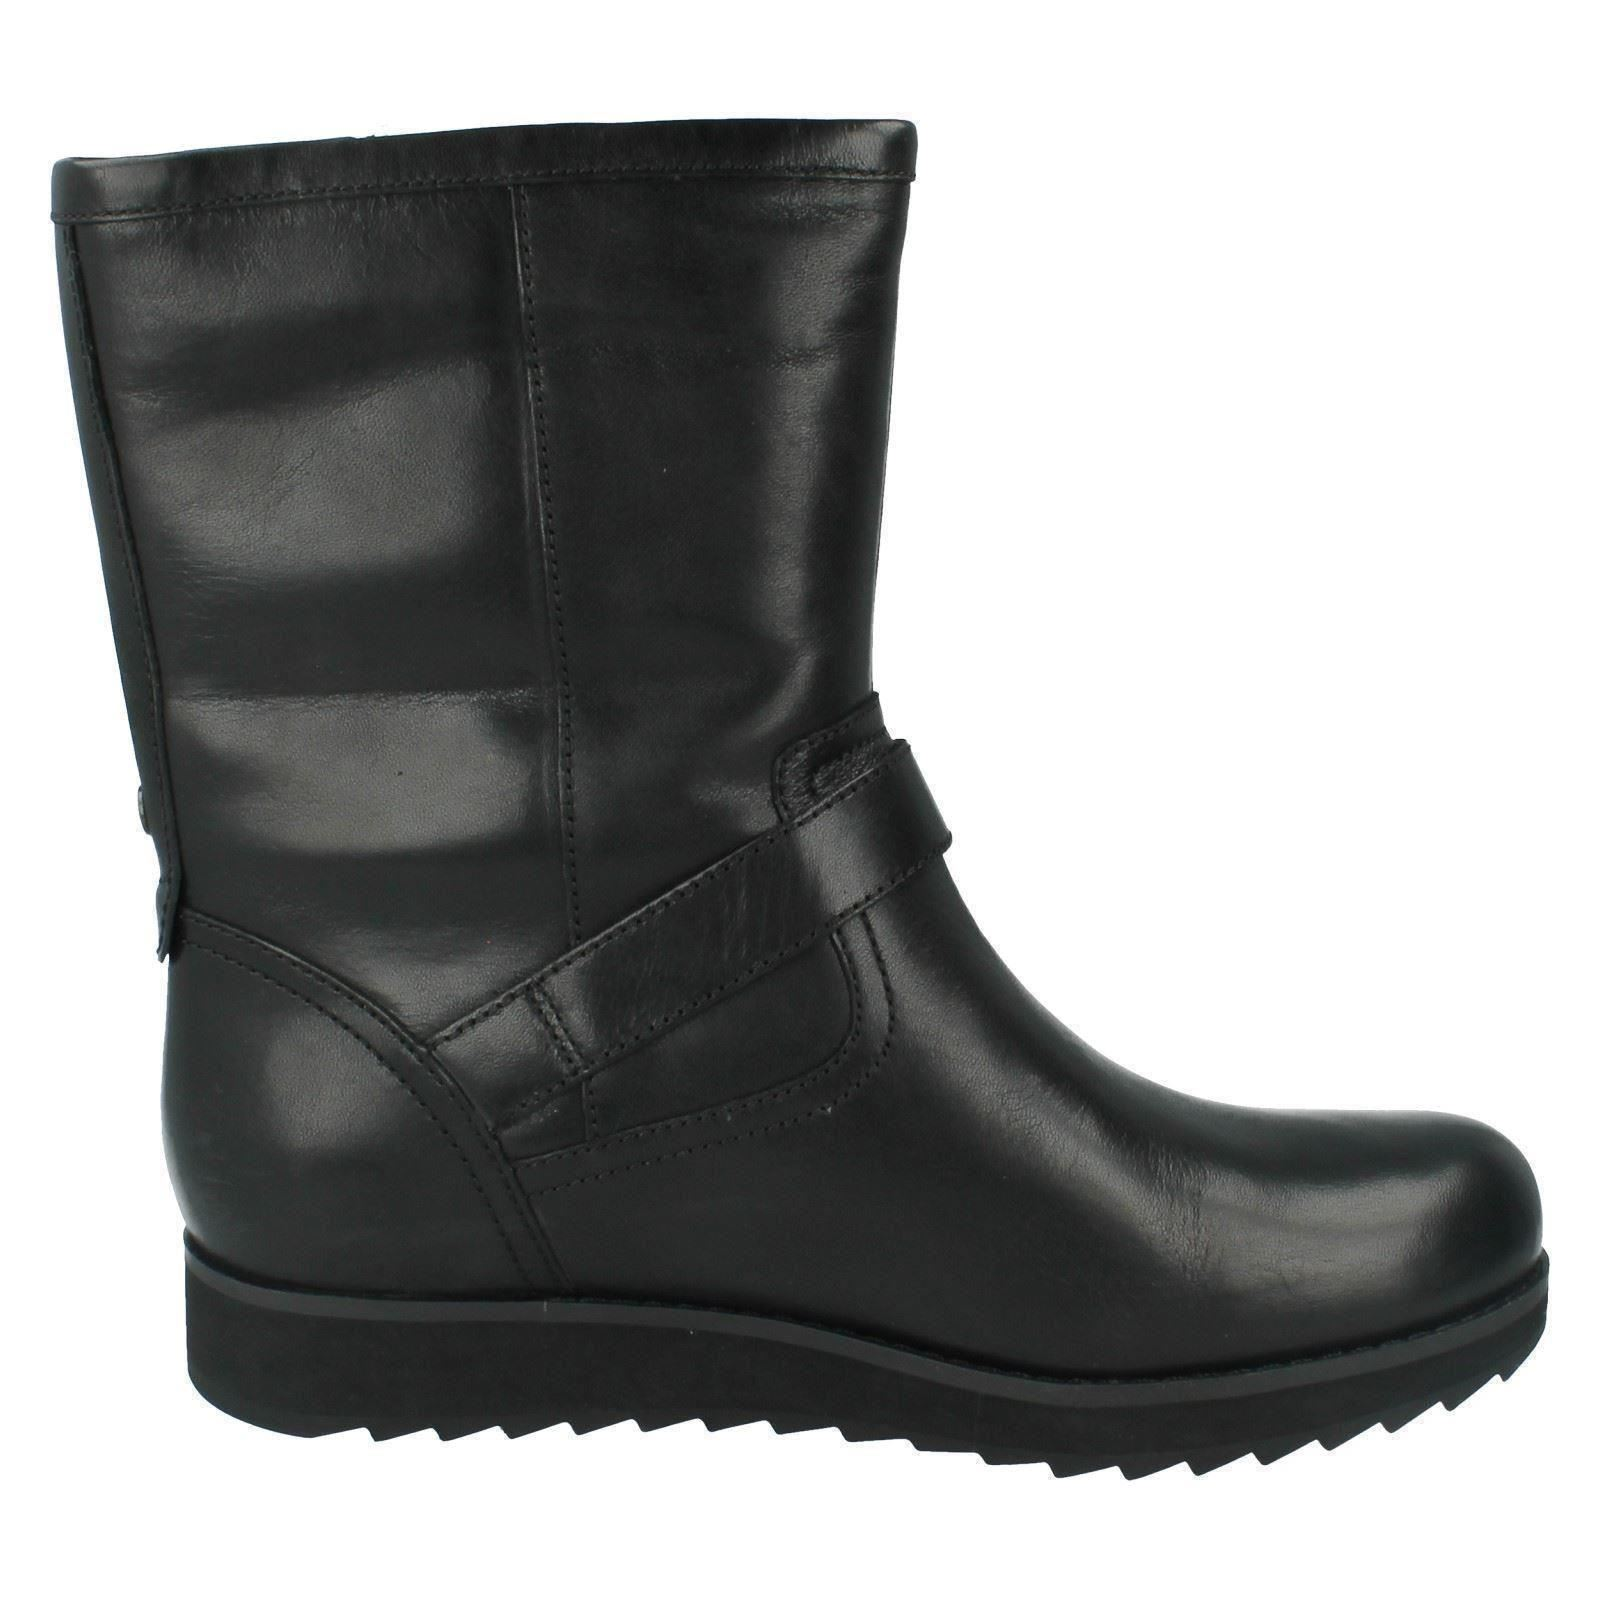 Trish Black The Leather Ladies Clarks Boots Style Ankle Minx qpwf0Yz